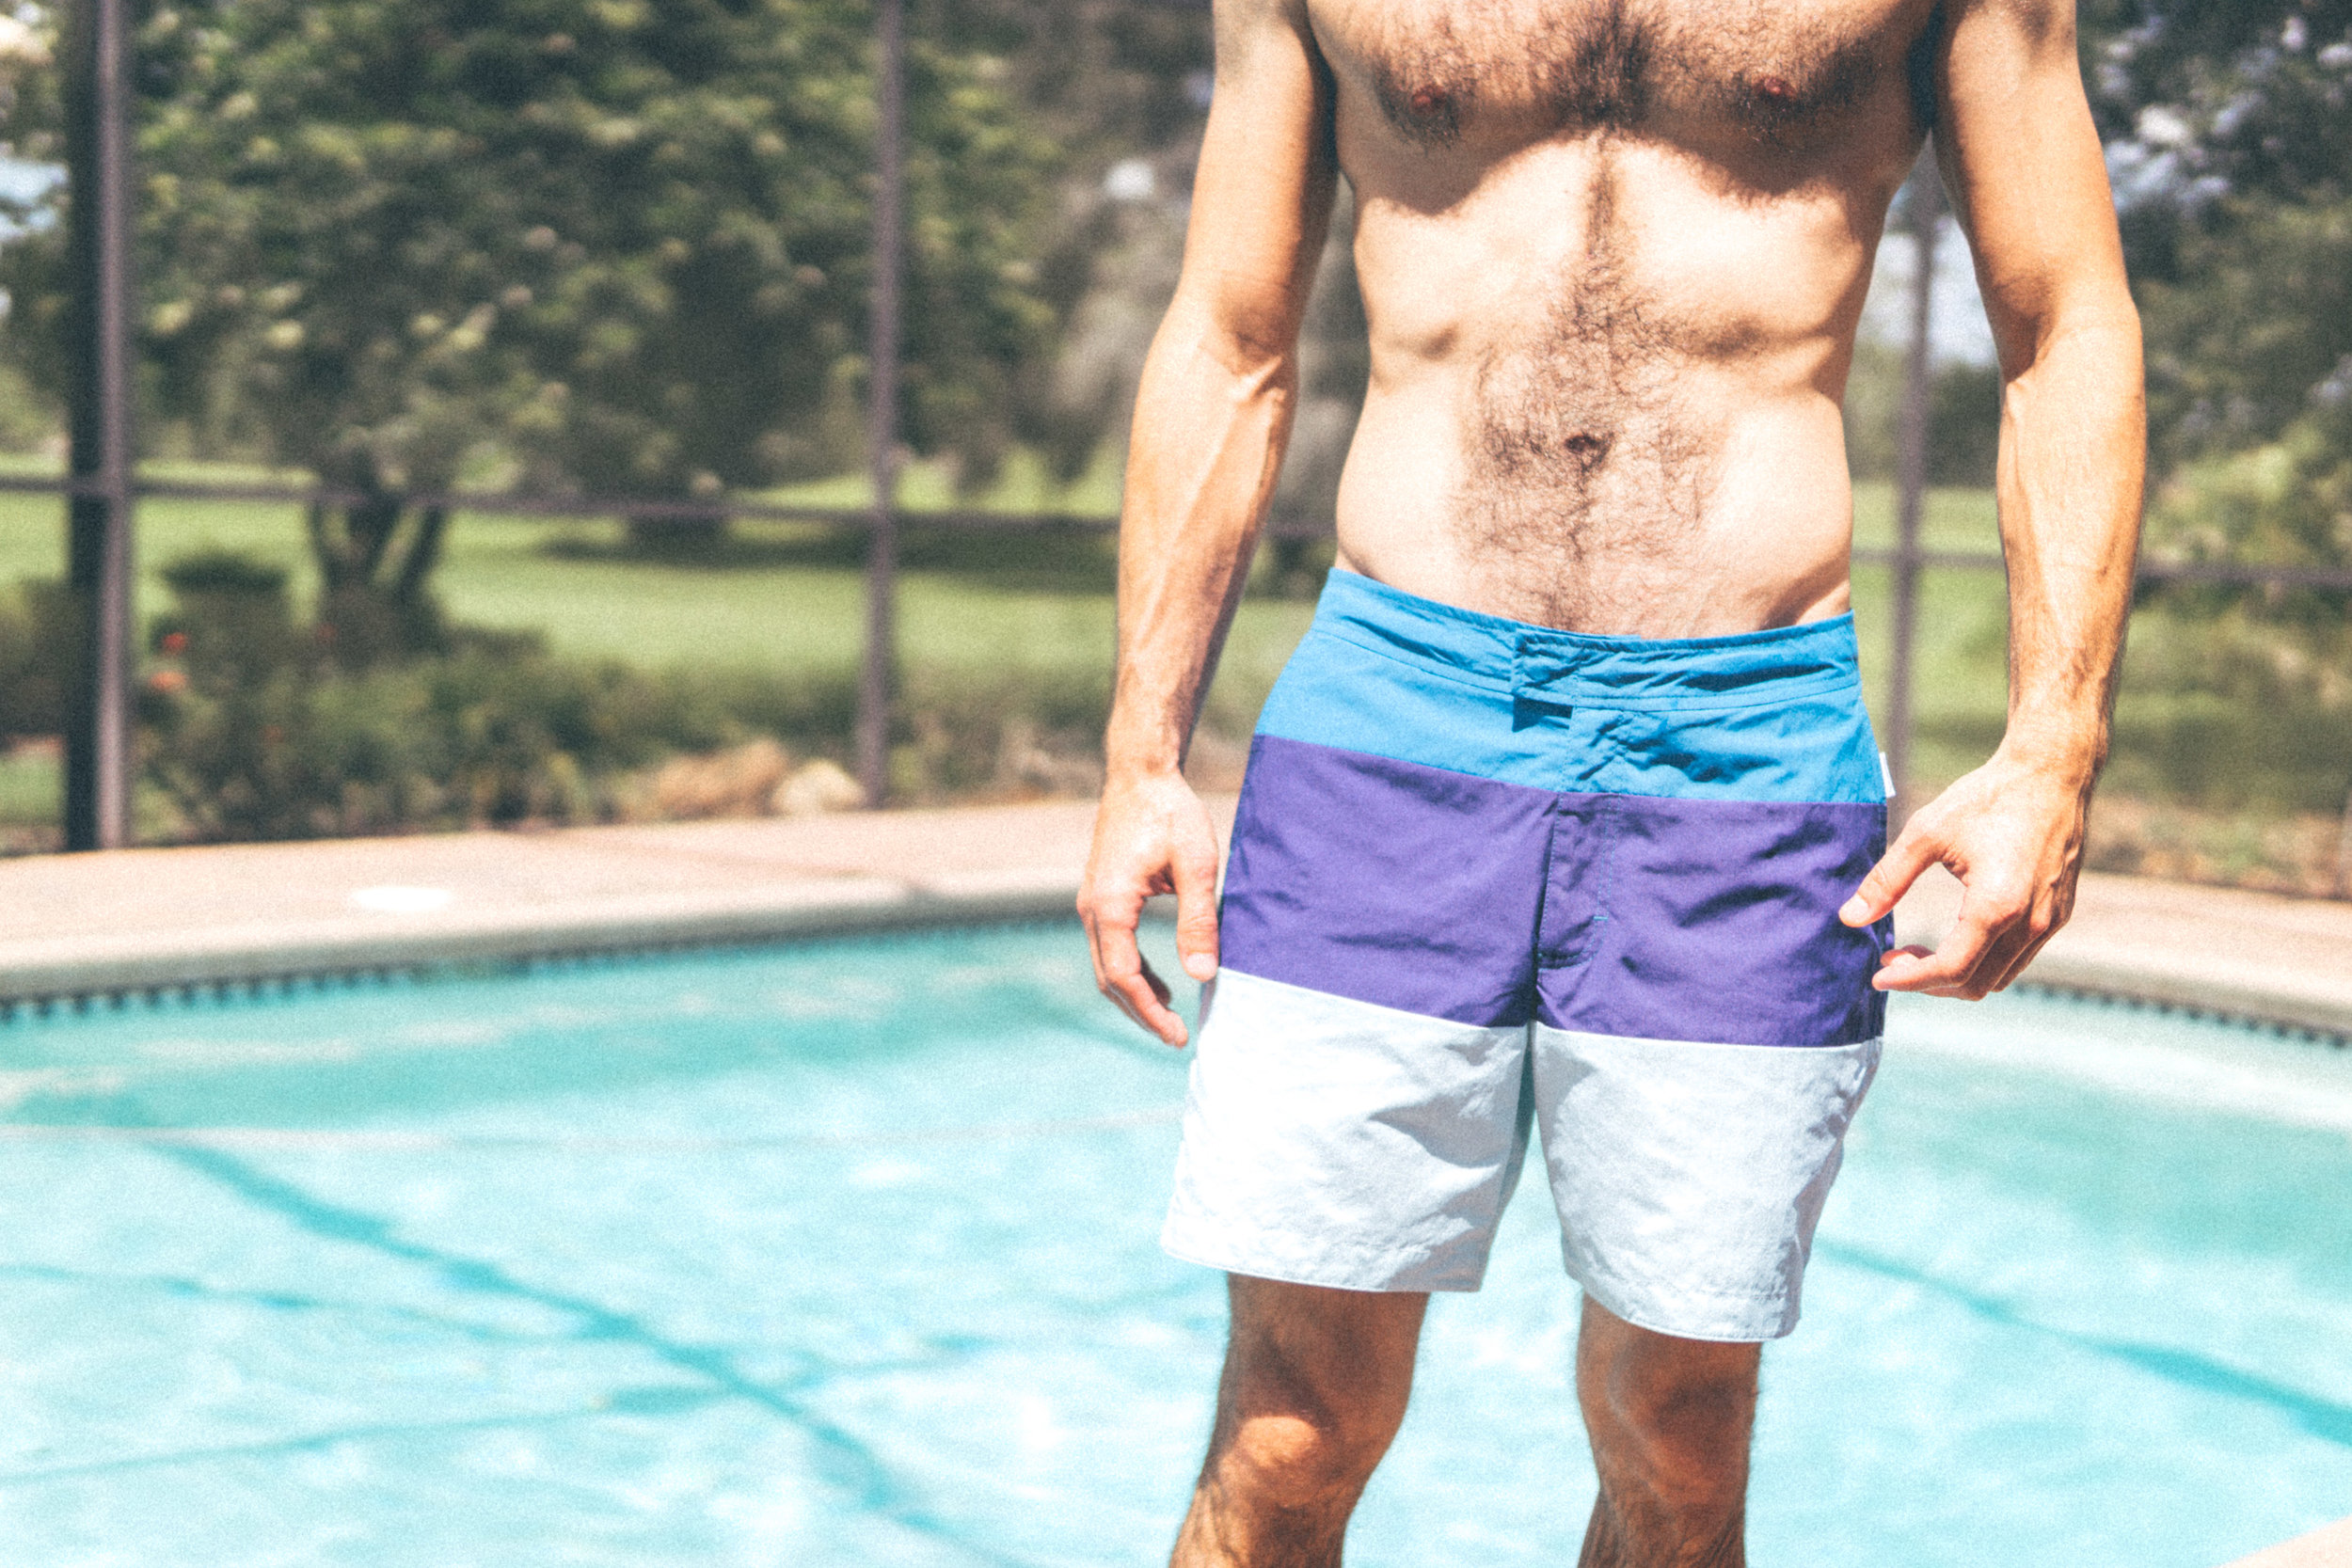 Aqua et Sol Men's Swimwear - Resort Collection - Features front snaps with zipper & inside drawstring, back pocket with magnetic closure & zipper, plus 100% Nylon UV-protected fabrication & fast-drying technology.